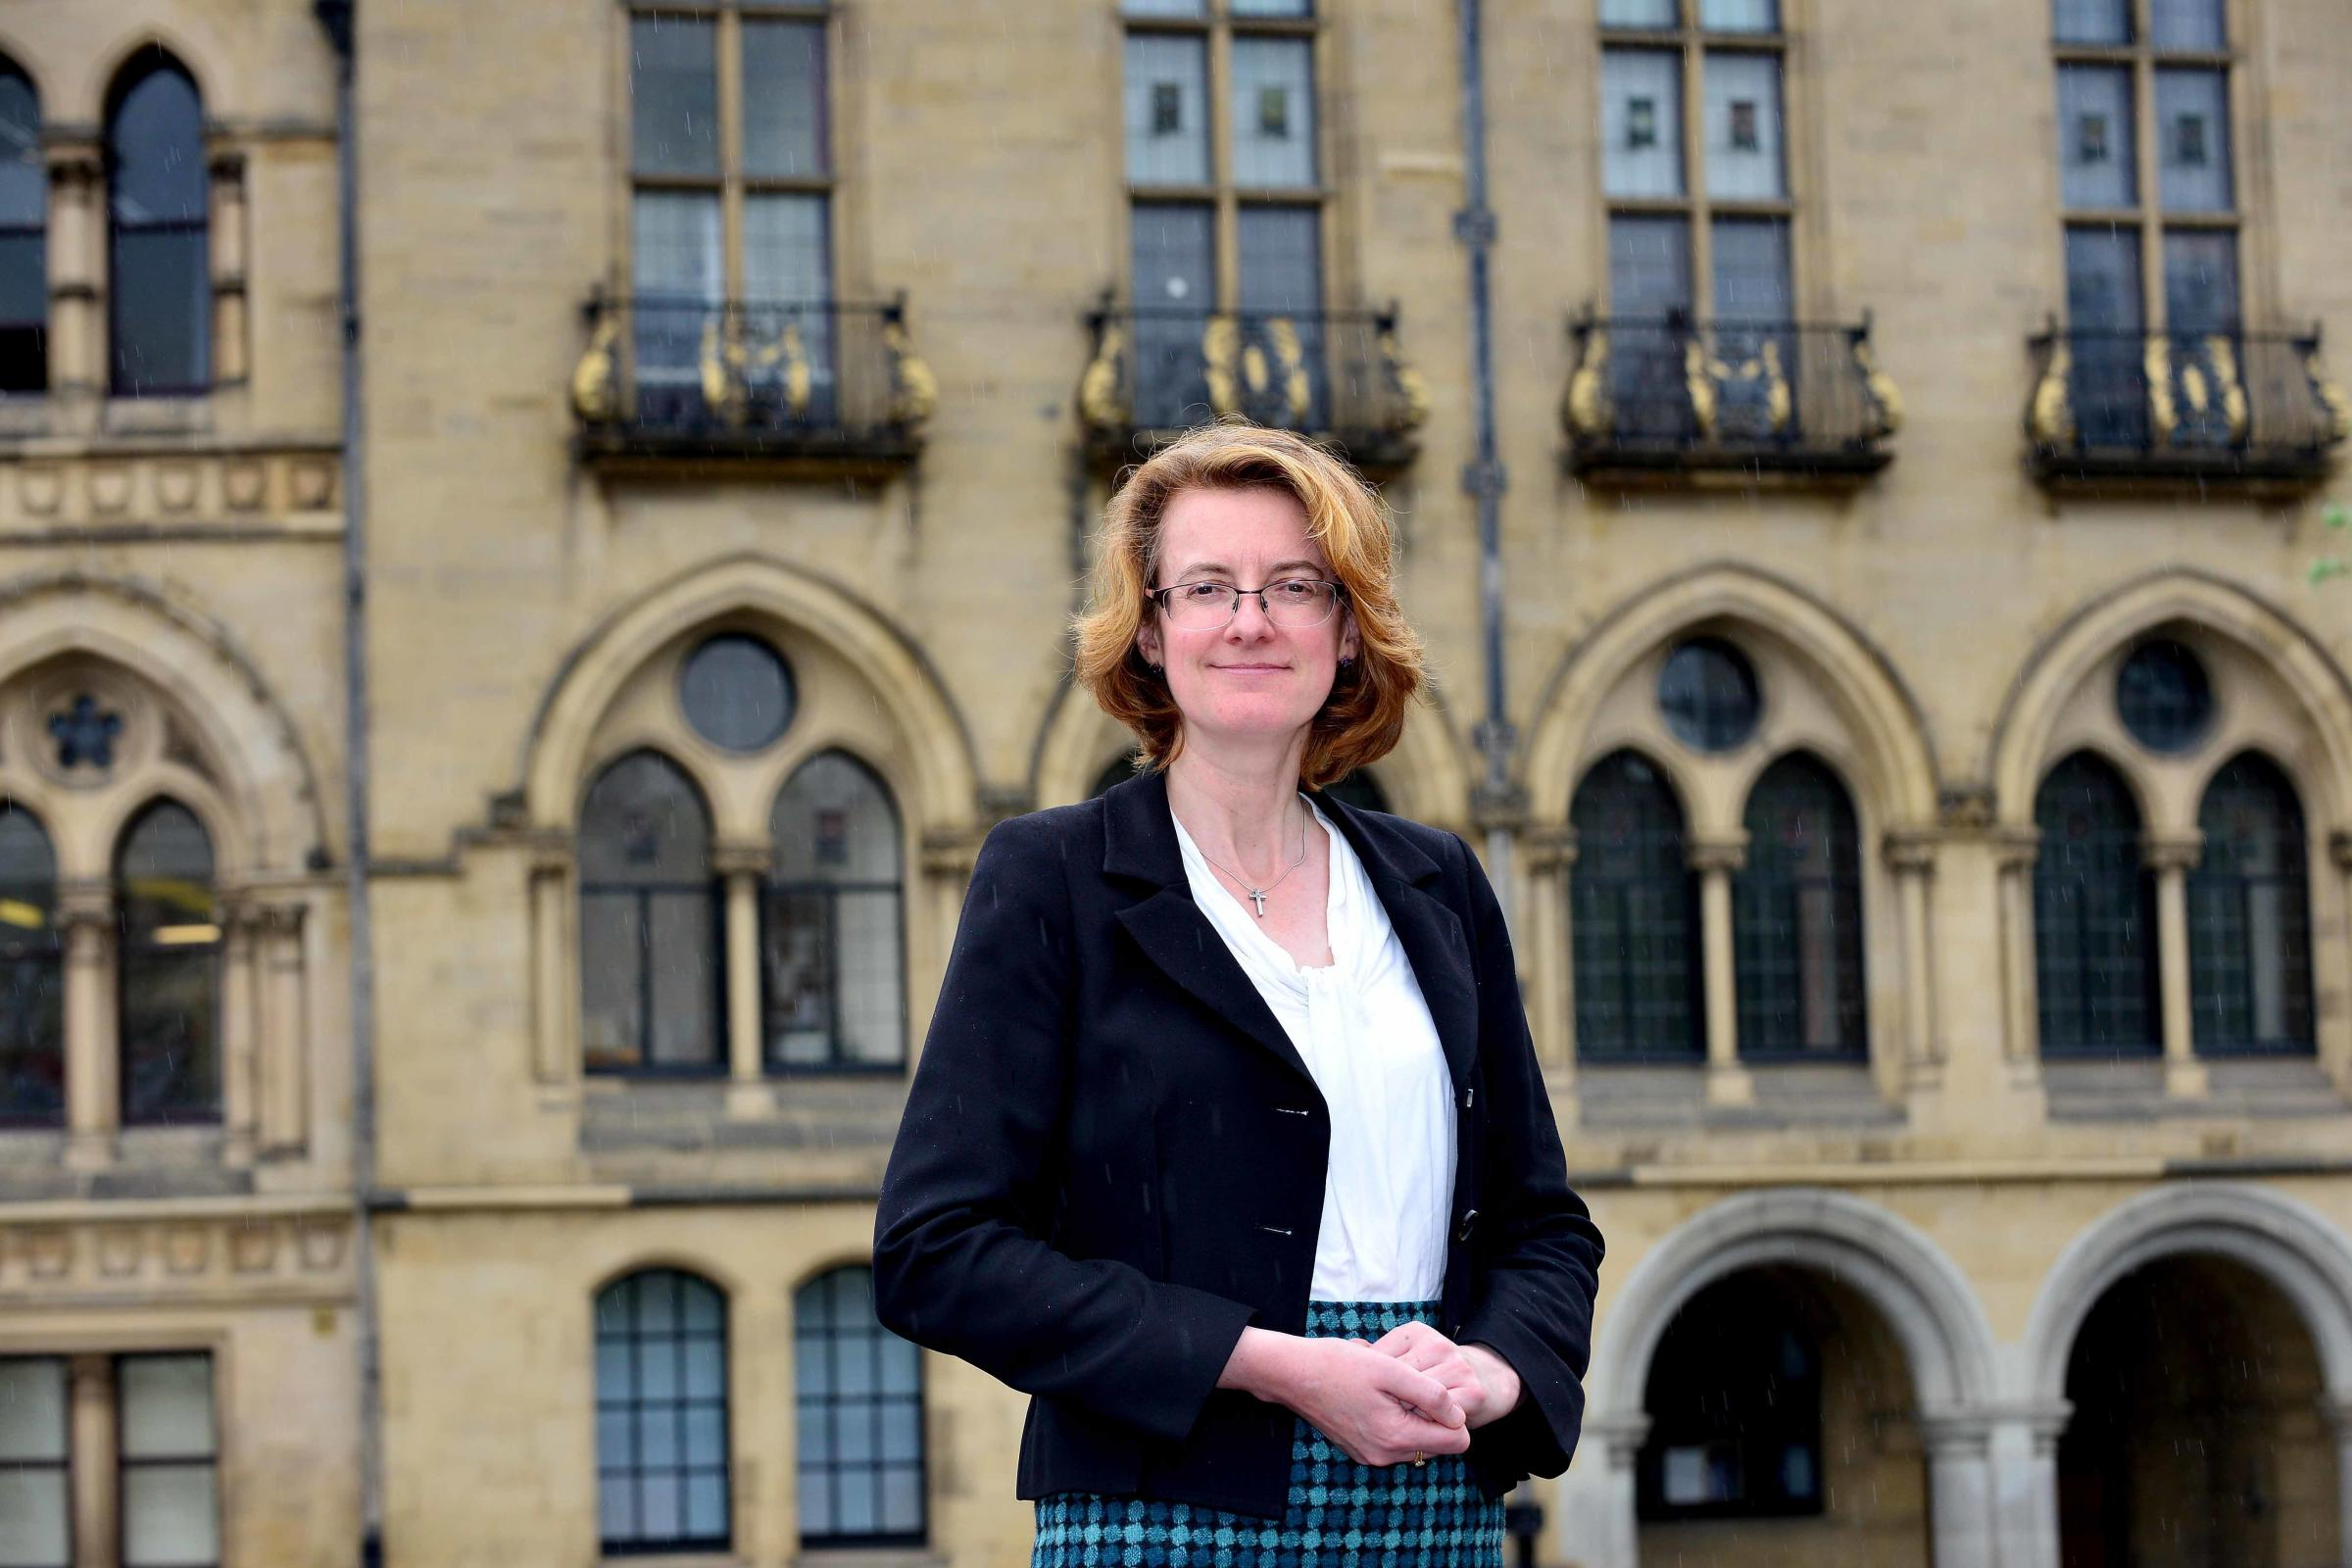 Susan Hinchcliffe: Evidence shows Bradford district 'heading in the right direction'